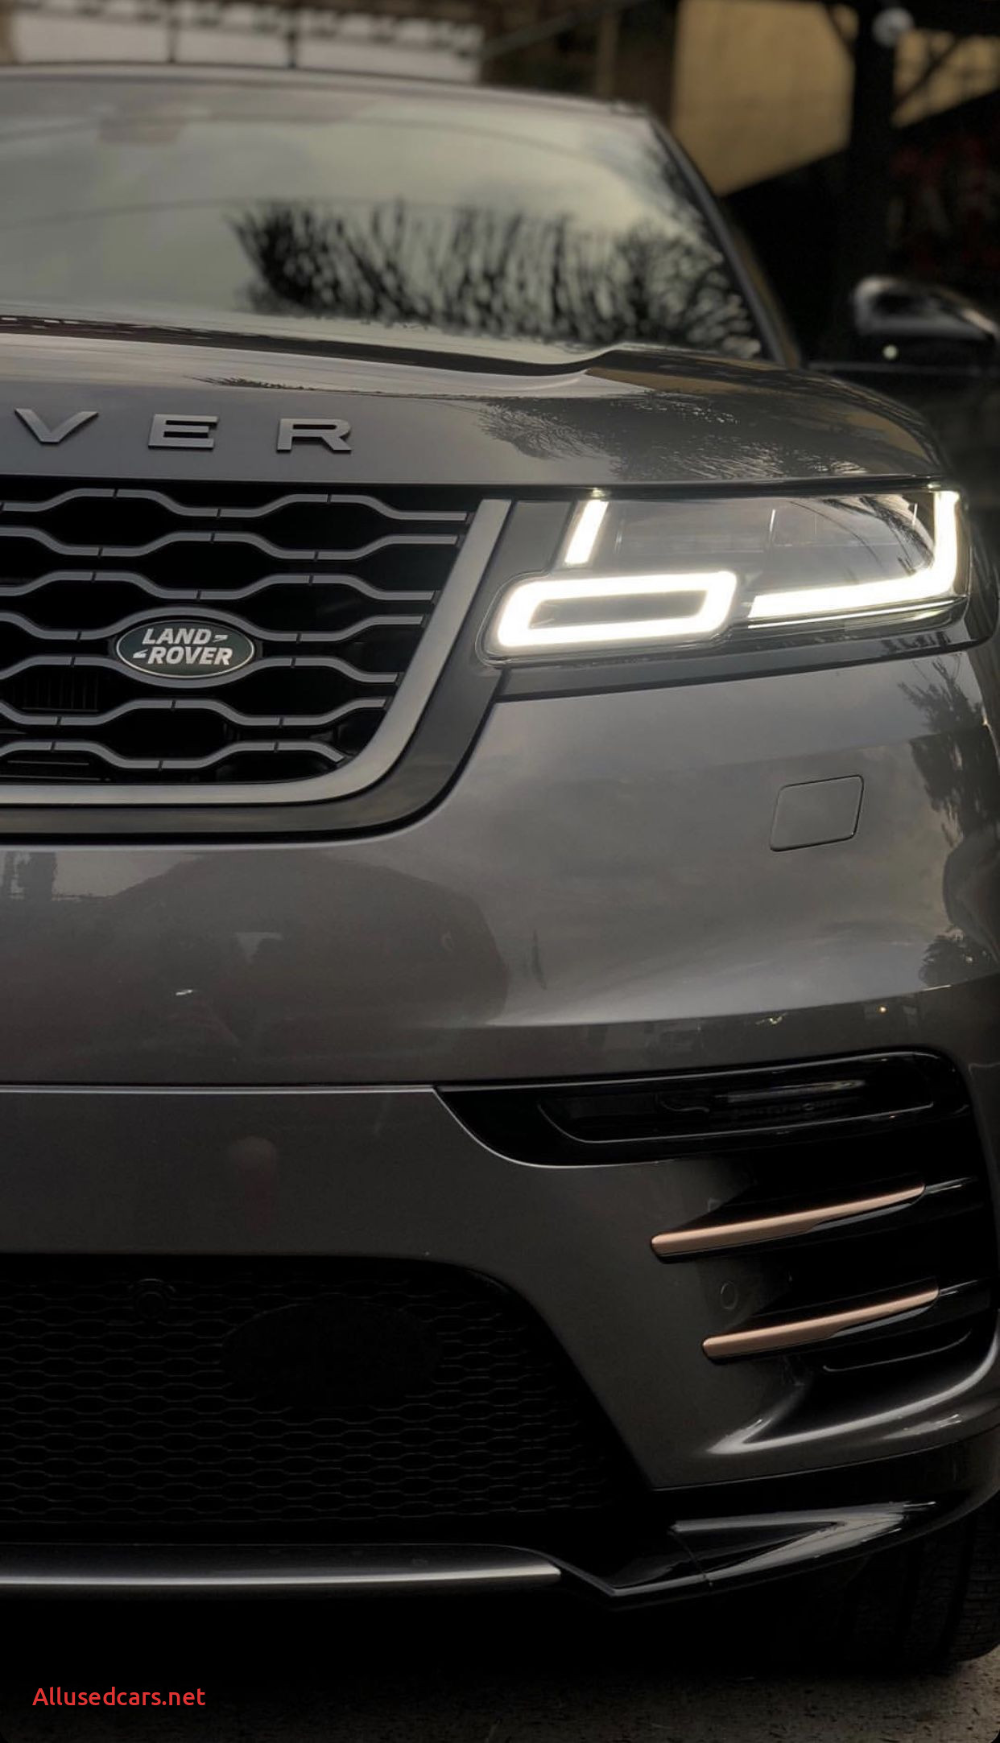 Culver City Toyota Elegant 400 Best Car S Images In 2020 Range Rover Range Rover Supercharged Dream Cars